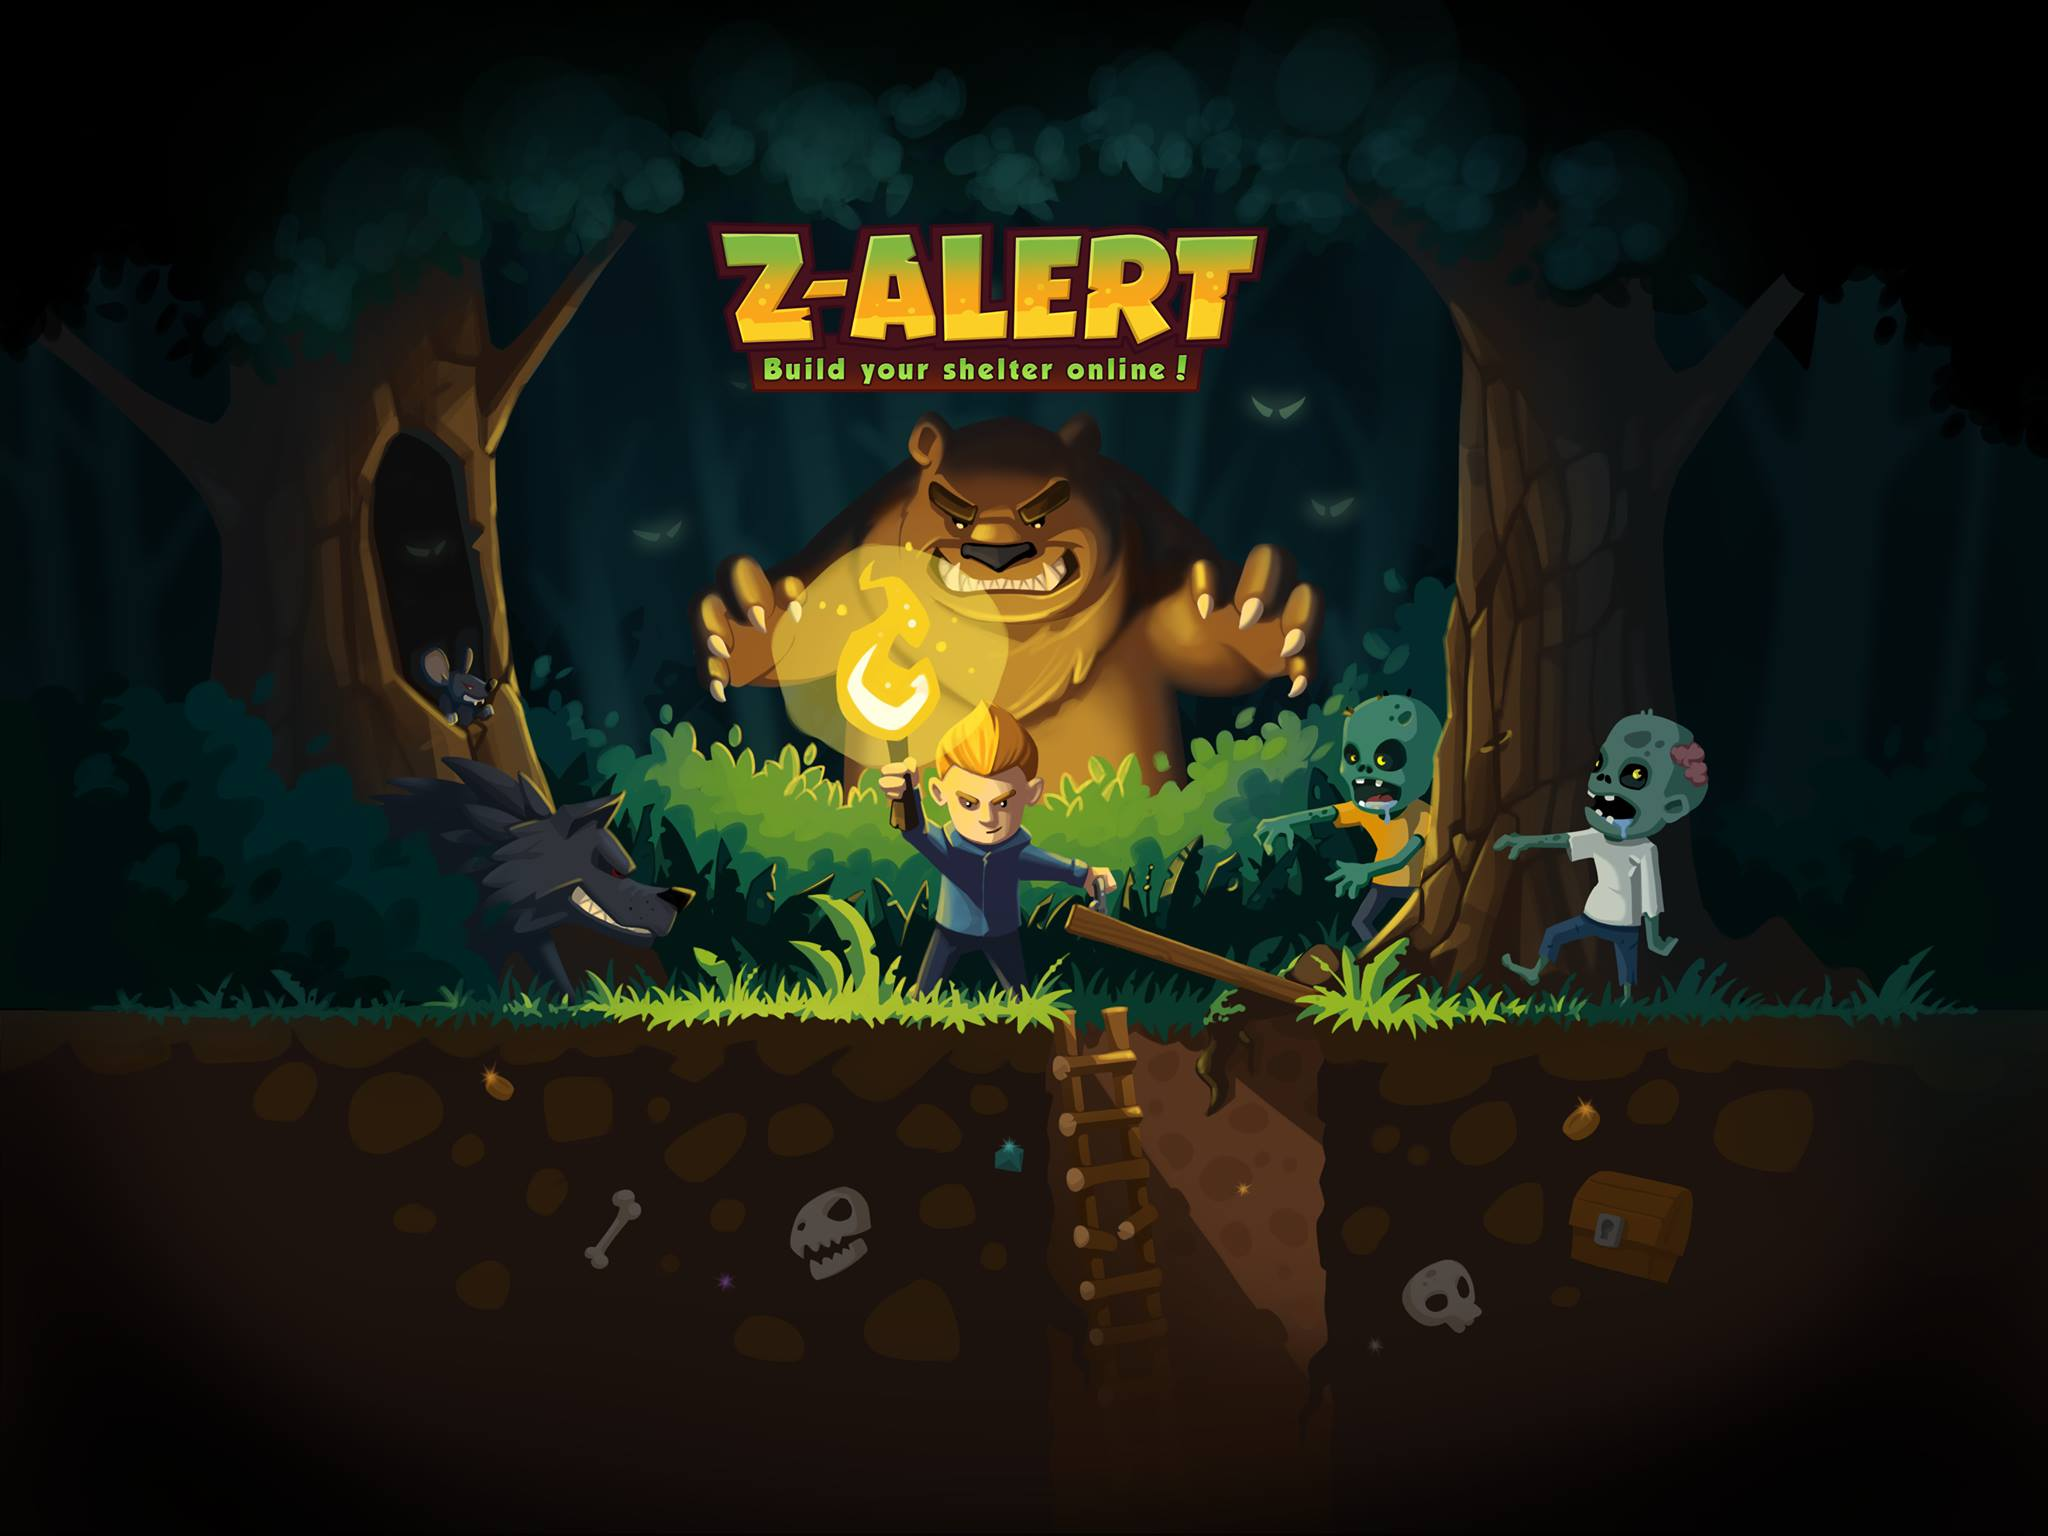 Z-Alert announced for PC and Mac